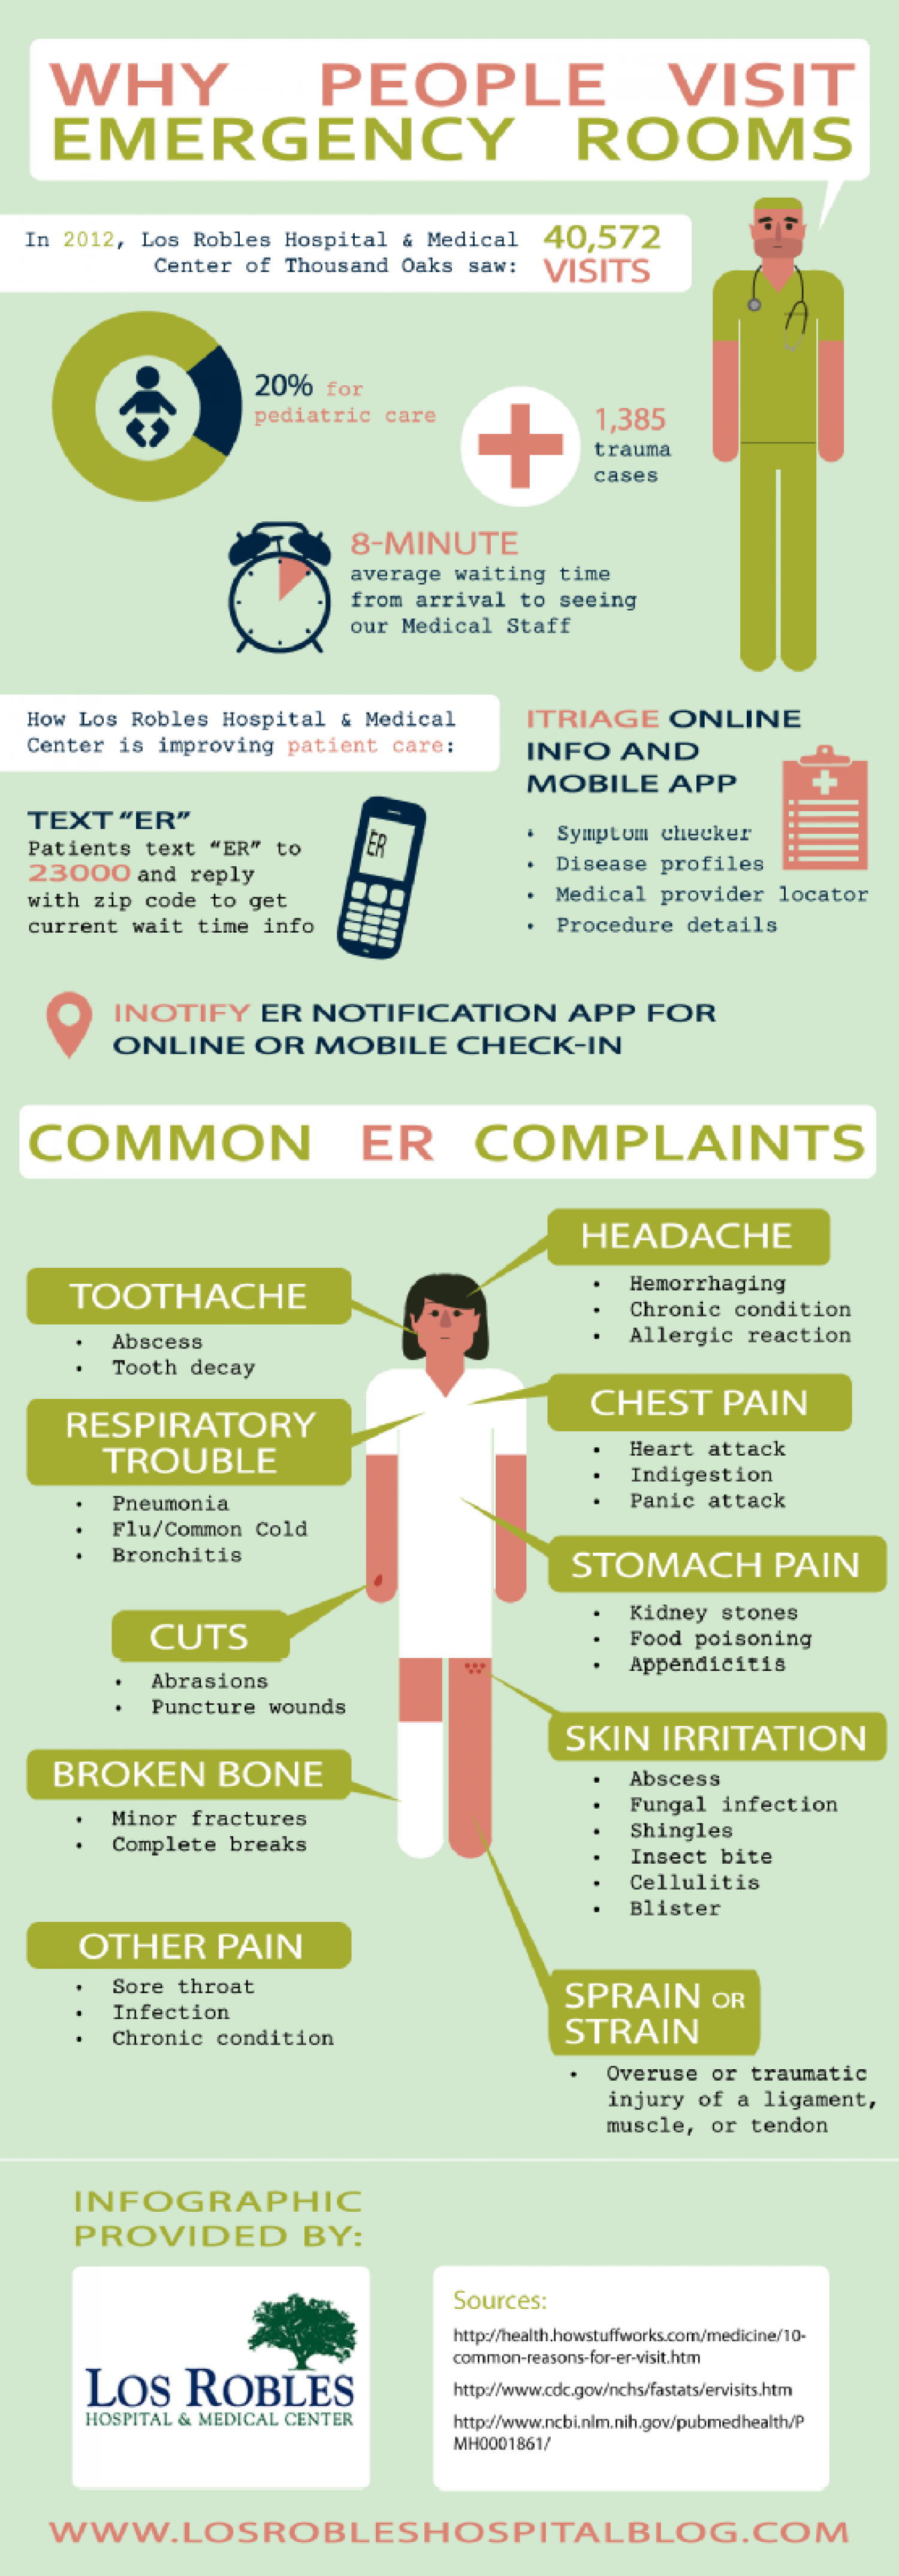 Why People Visit Emergency Rooms Infographic